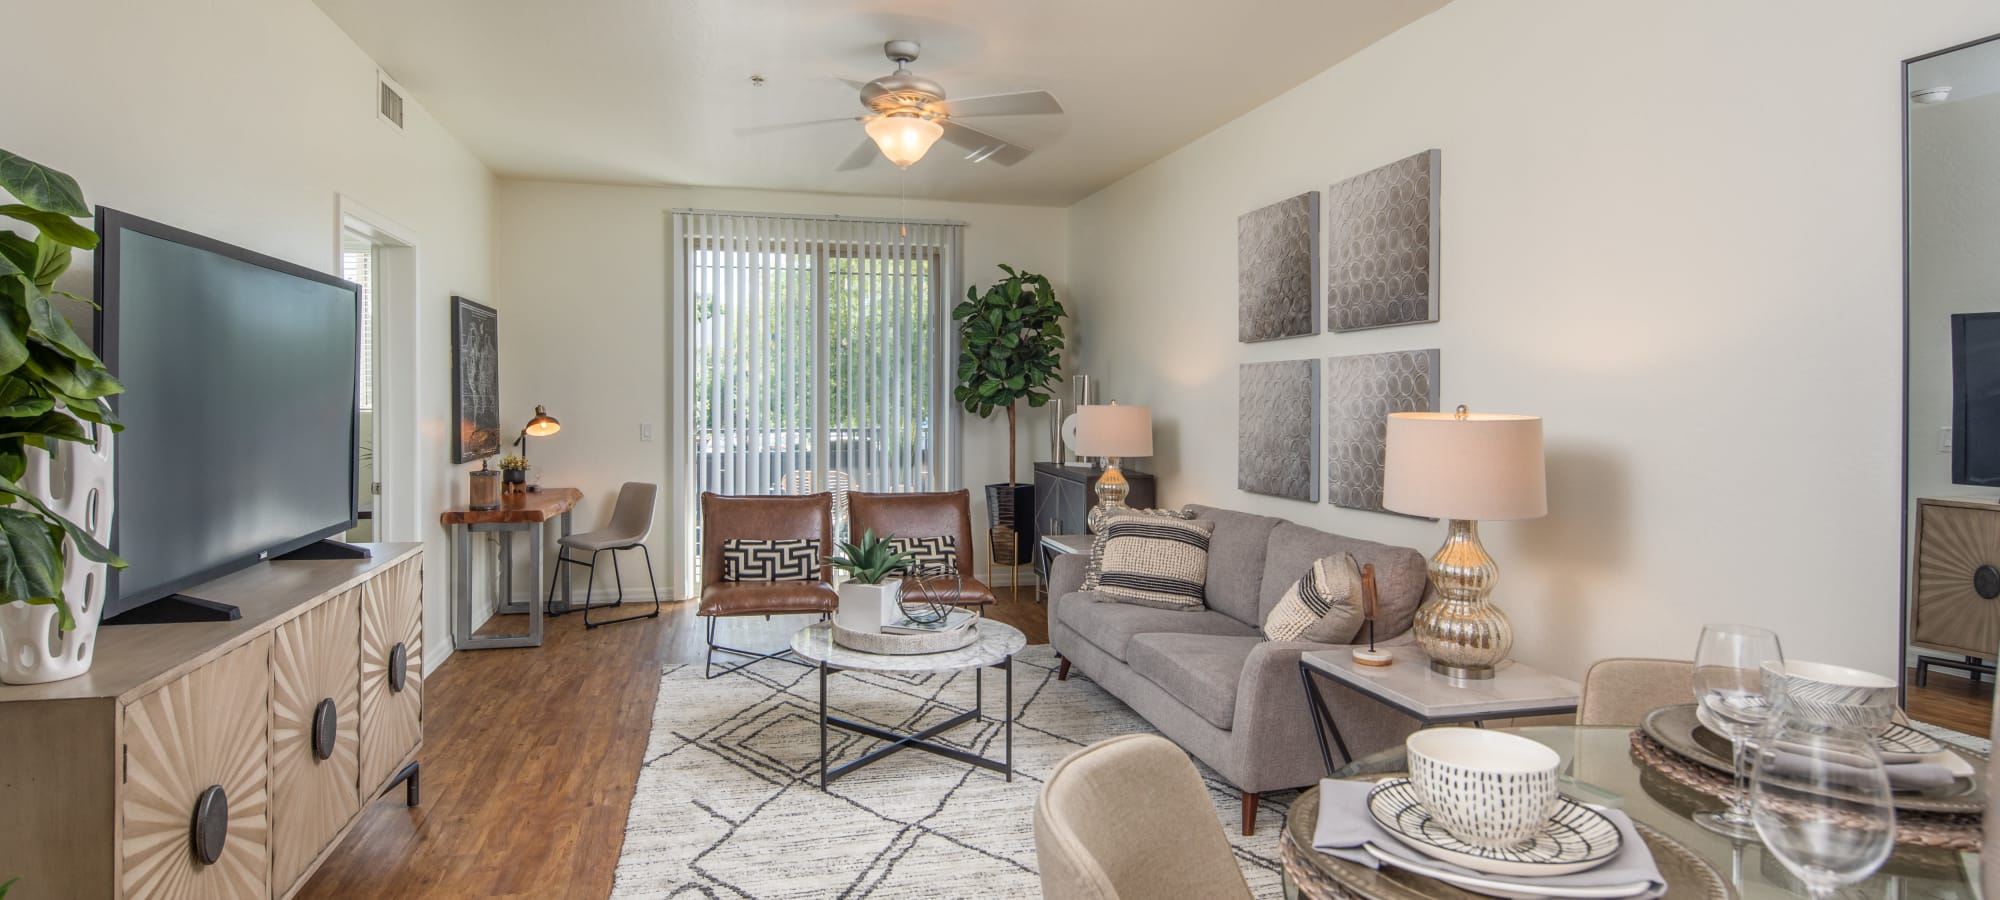 Bright living room at The Fleetwood in Tempe, Arizona